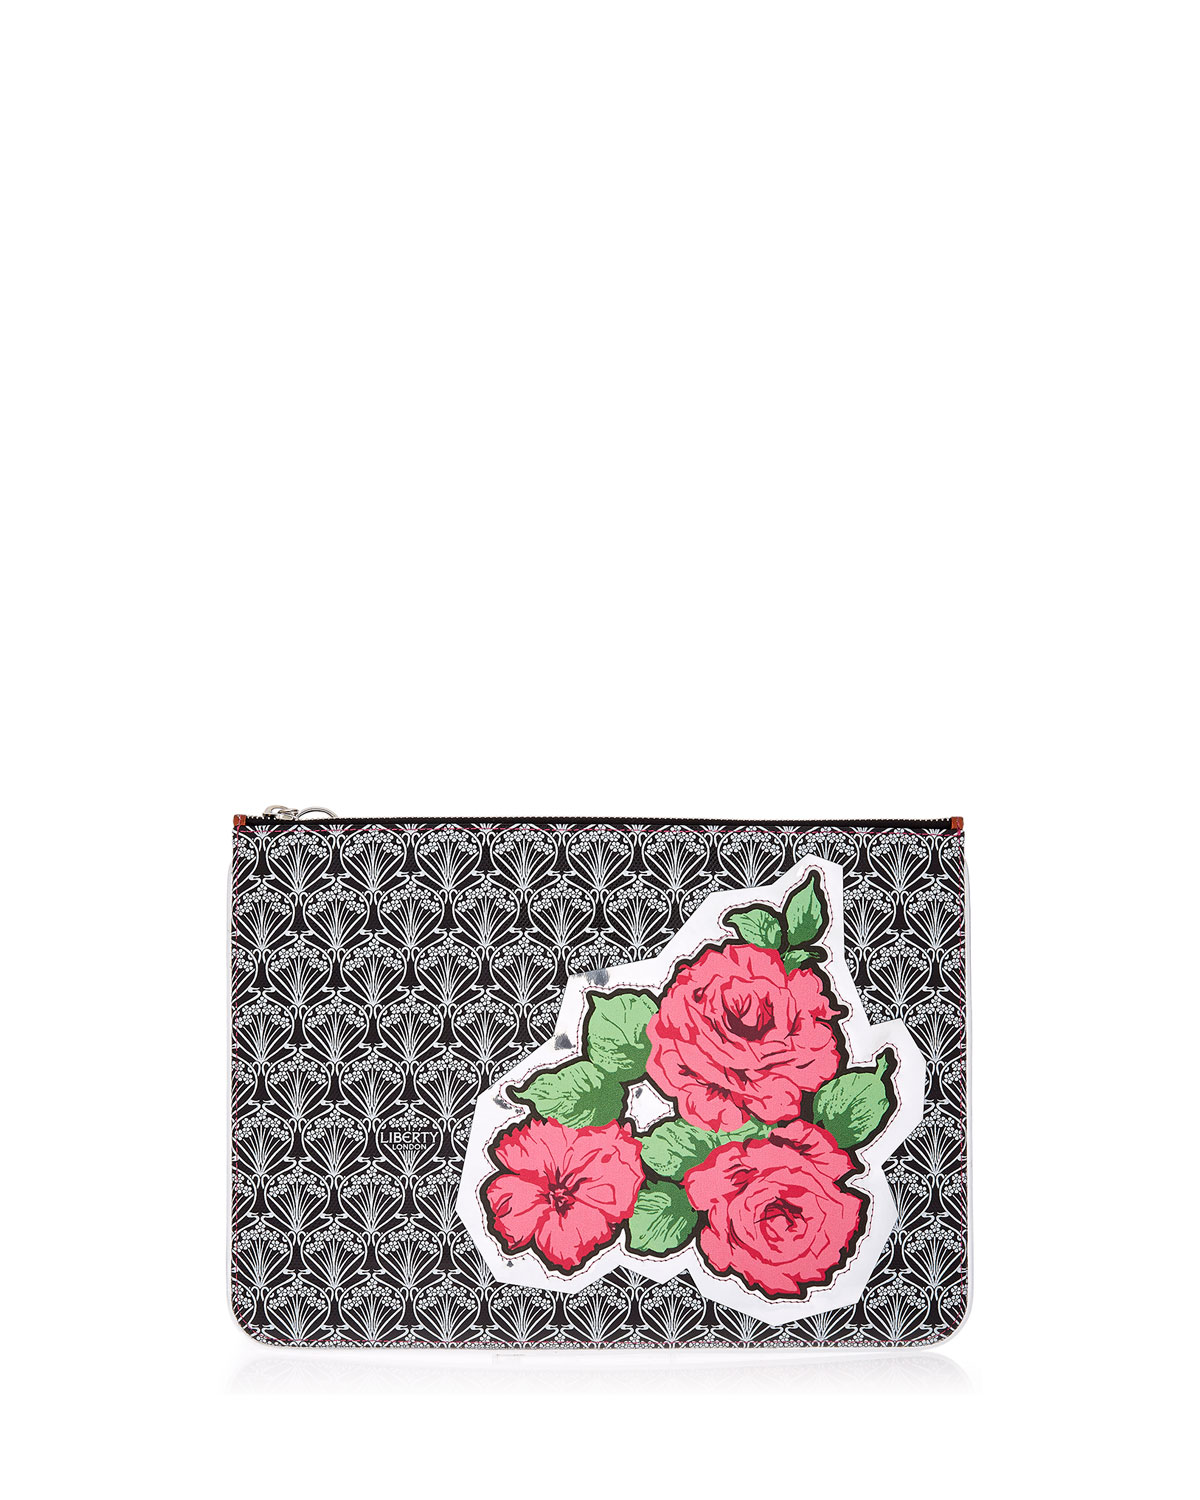 Rq Rose Canvas Pouch Bag in Black Pattern